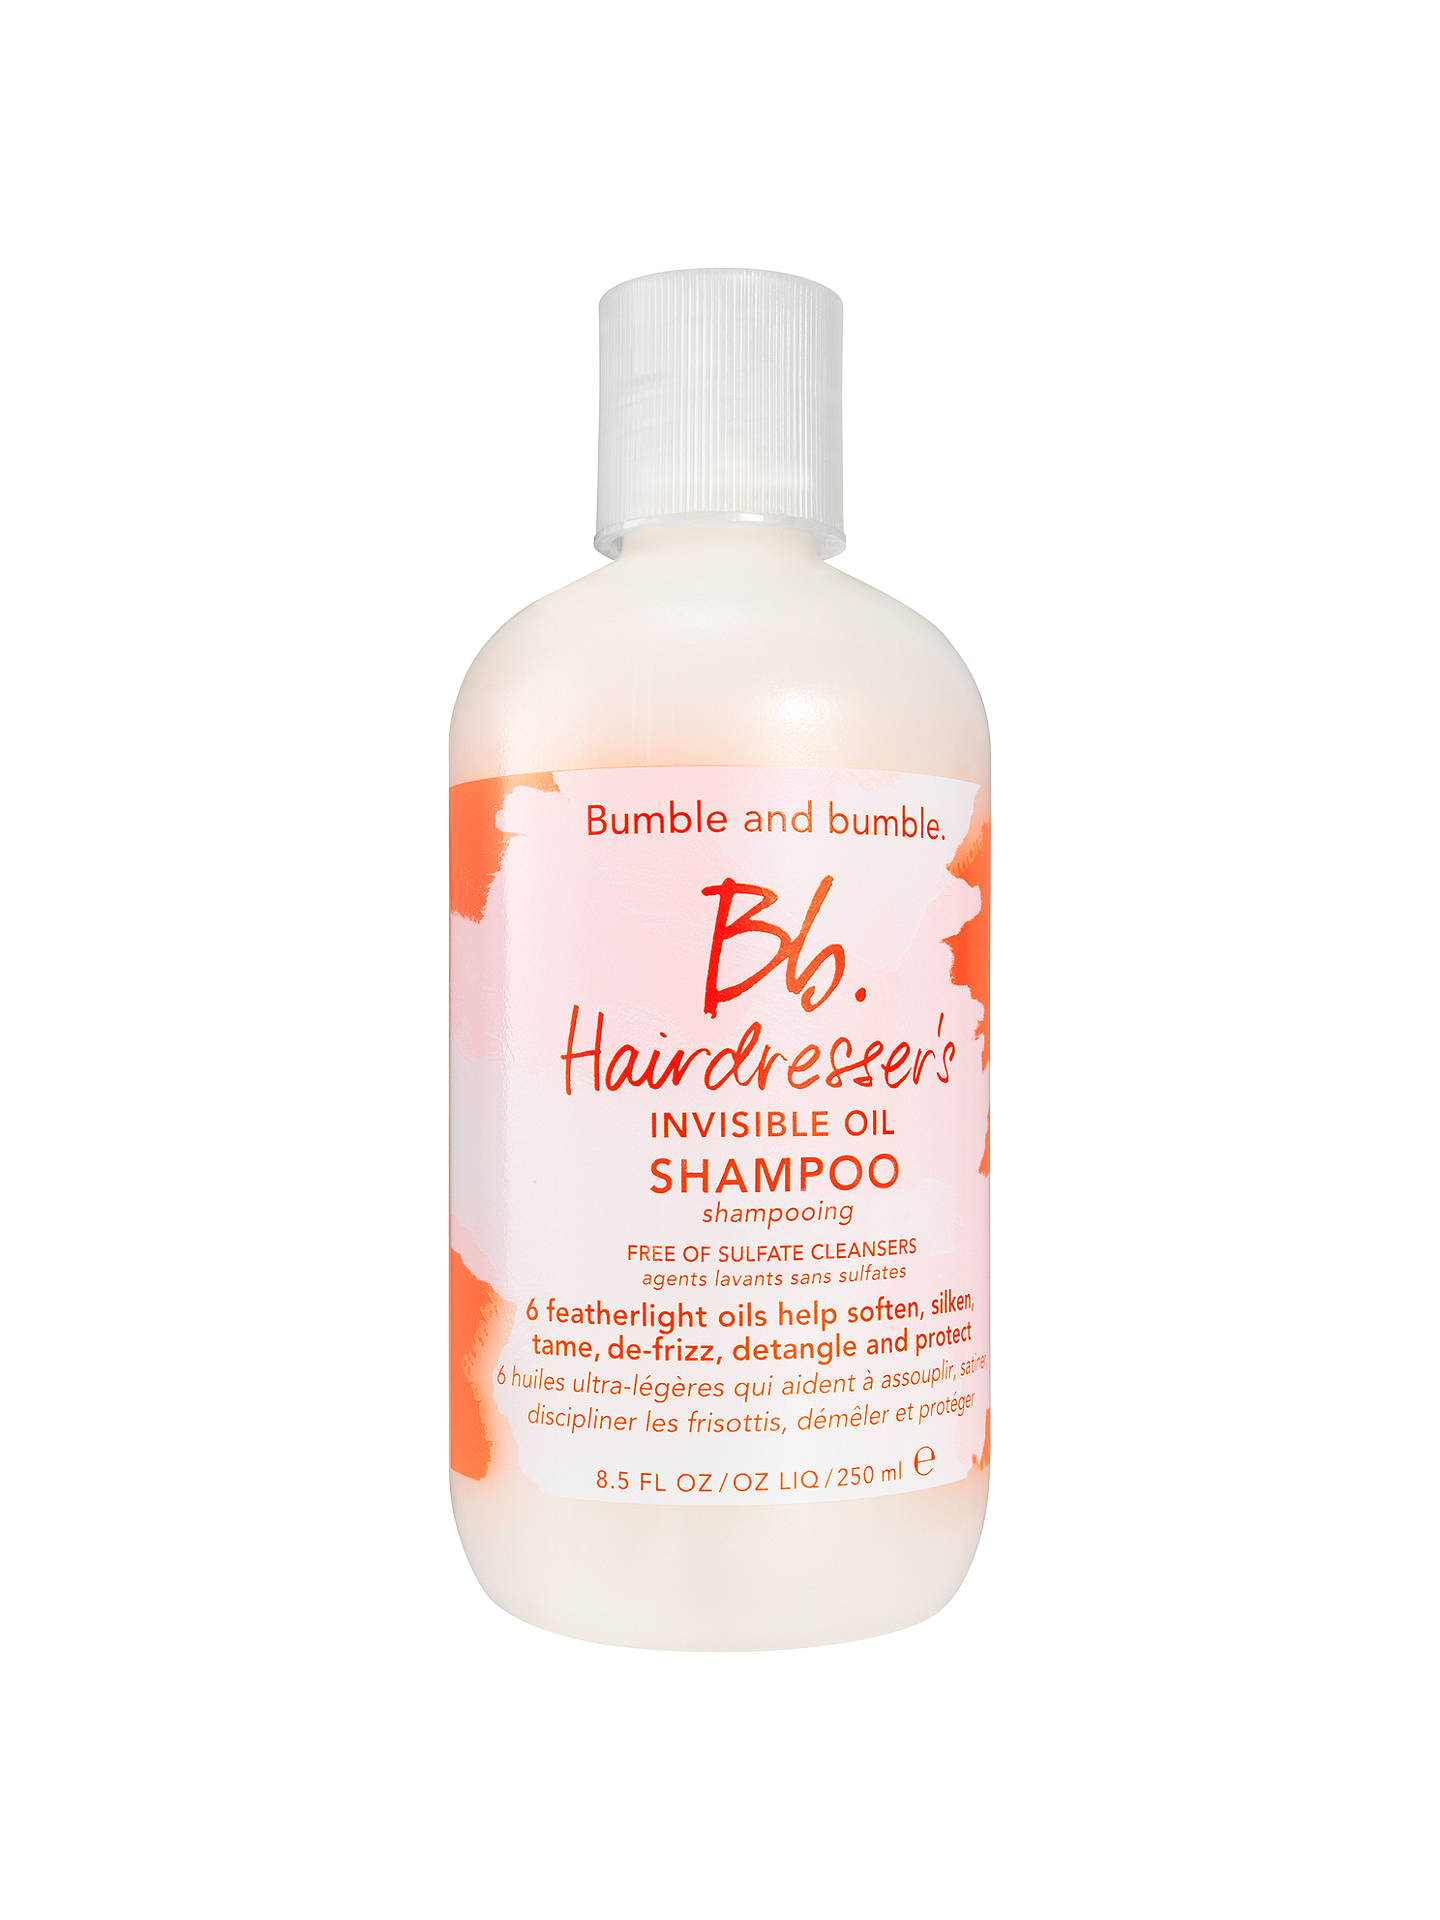 BuyBumble and bumble Hairdressers Invisible Oil Shampoo, 250ml Online at johnlewis.com